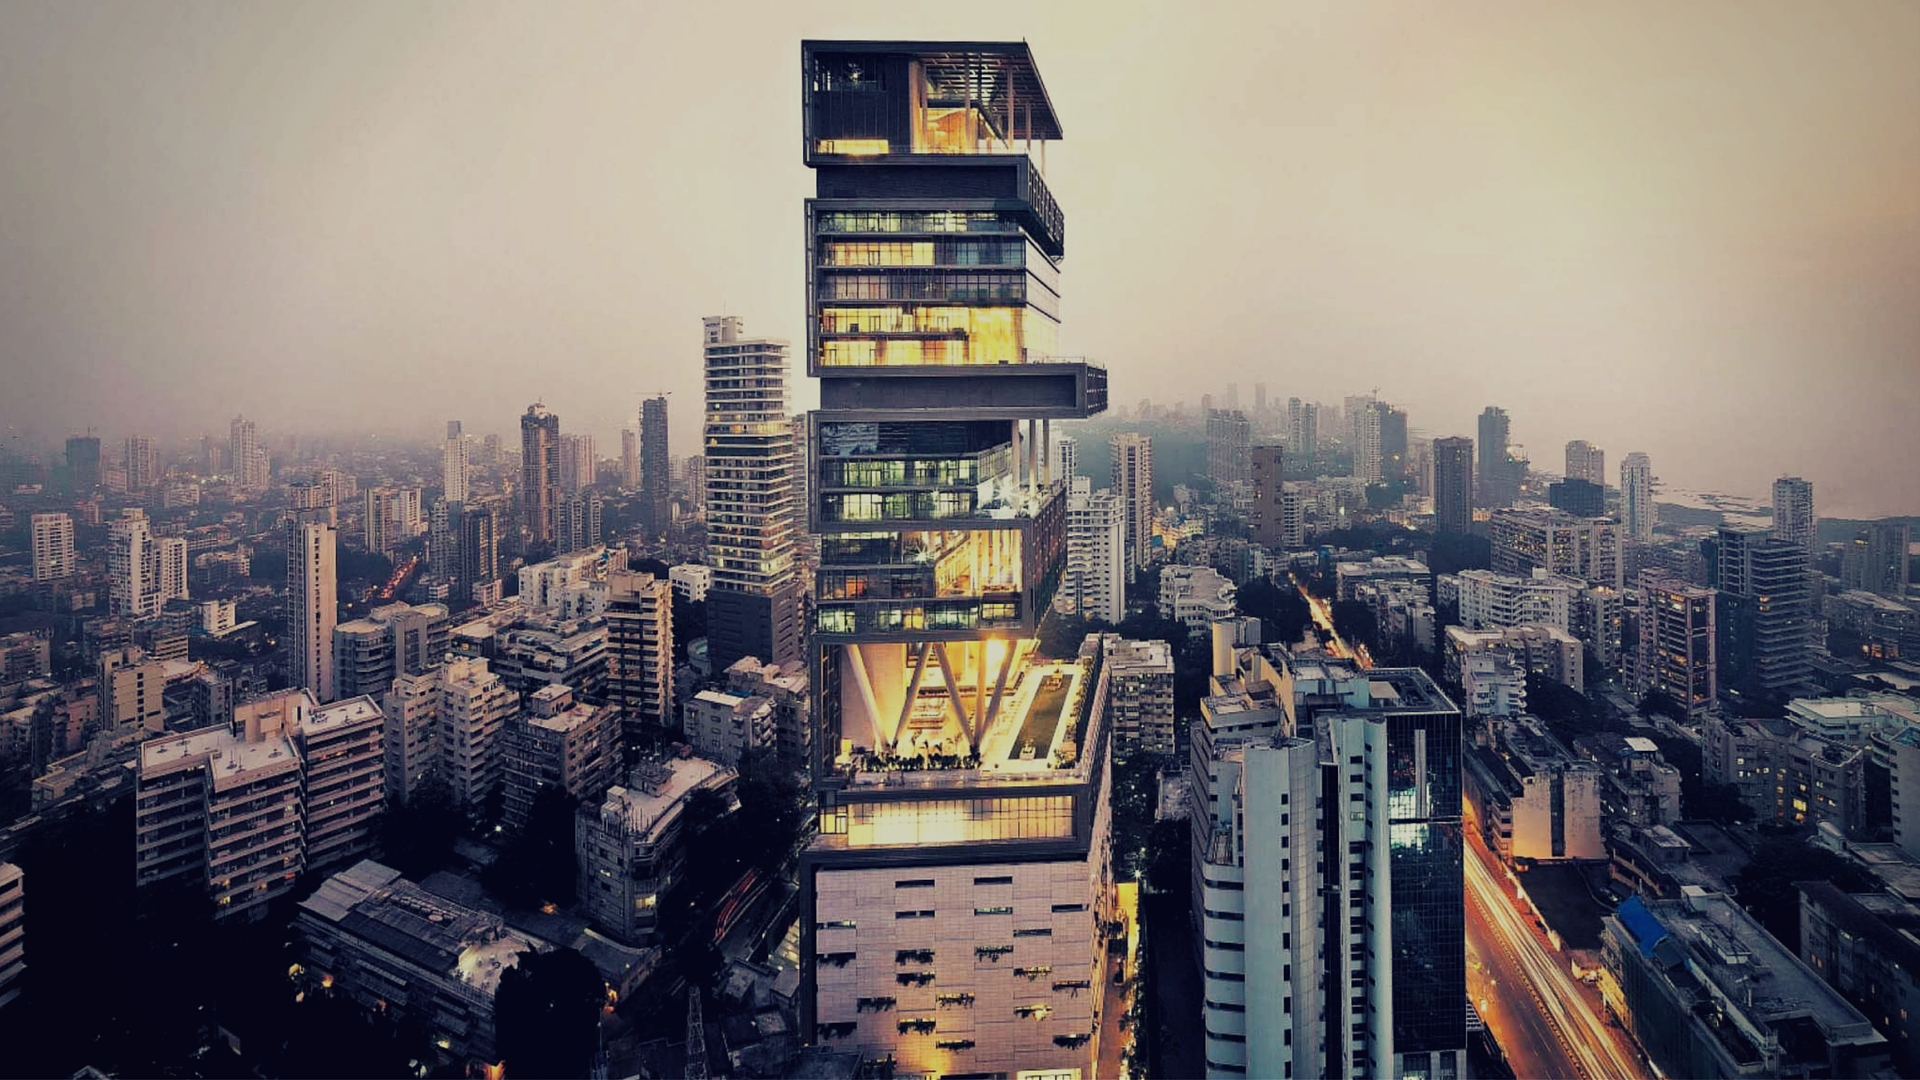 antilla structures where builders should have consulted architects